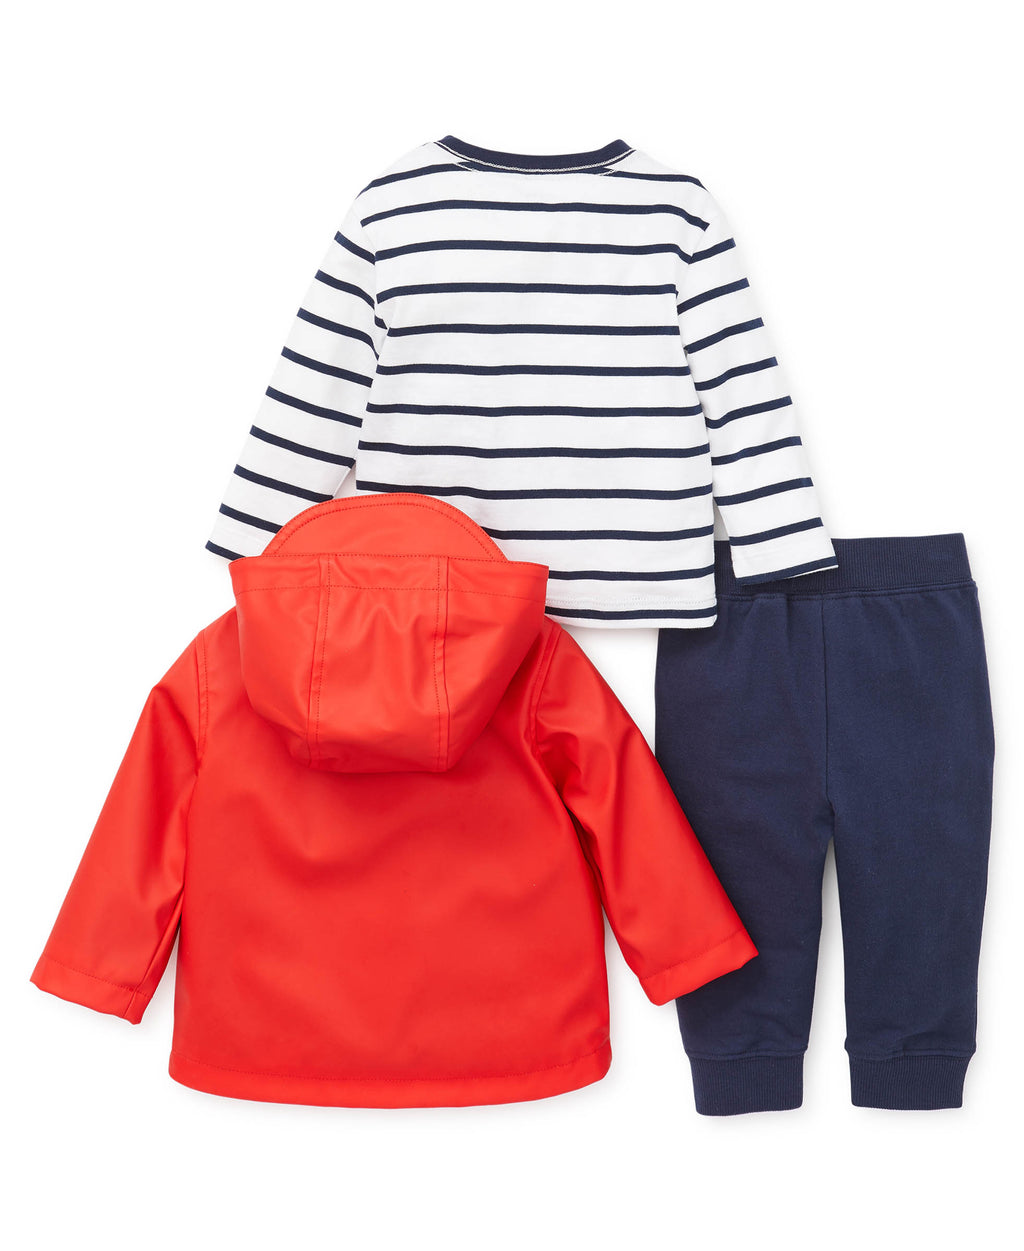 Red Toddler Jacket Set